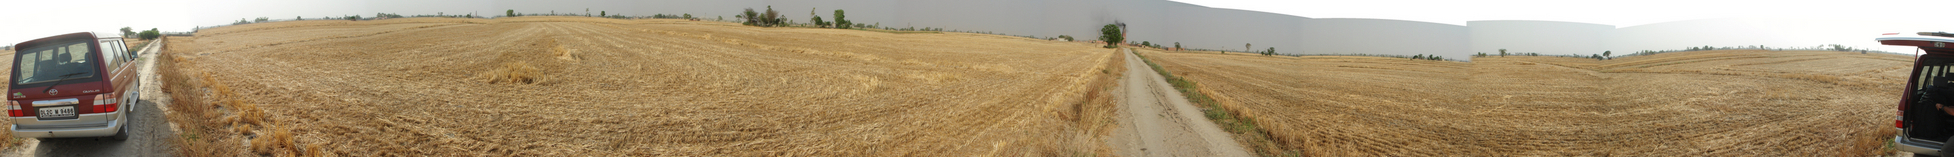 Panoramic view of the wheat fields